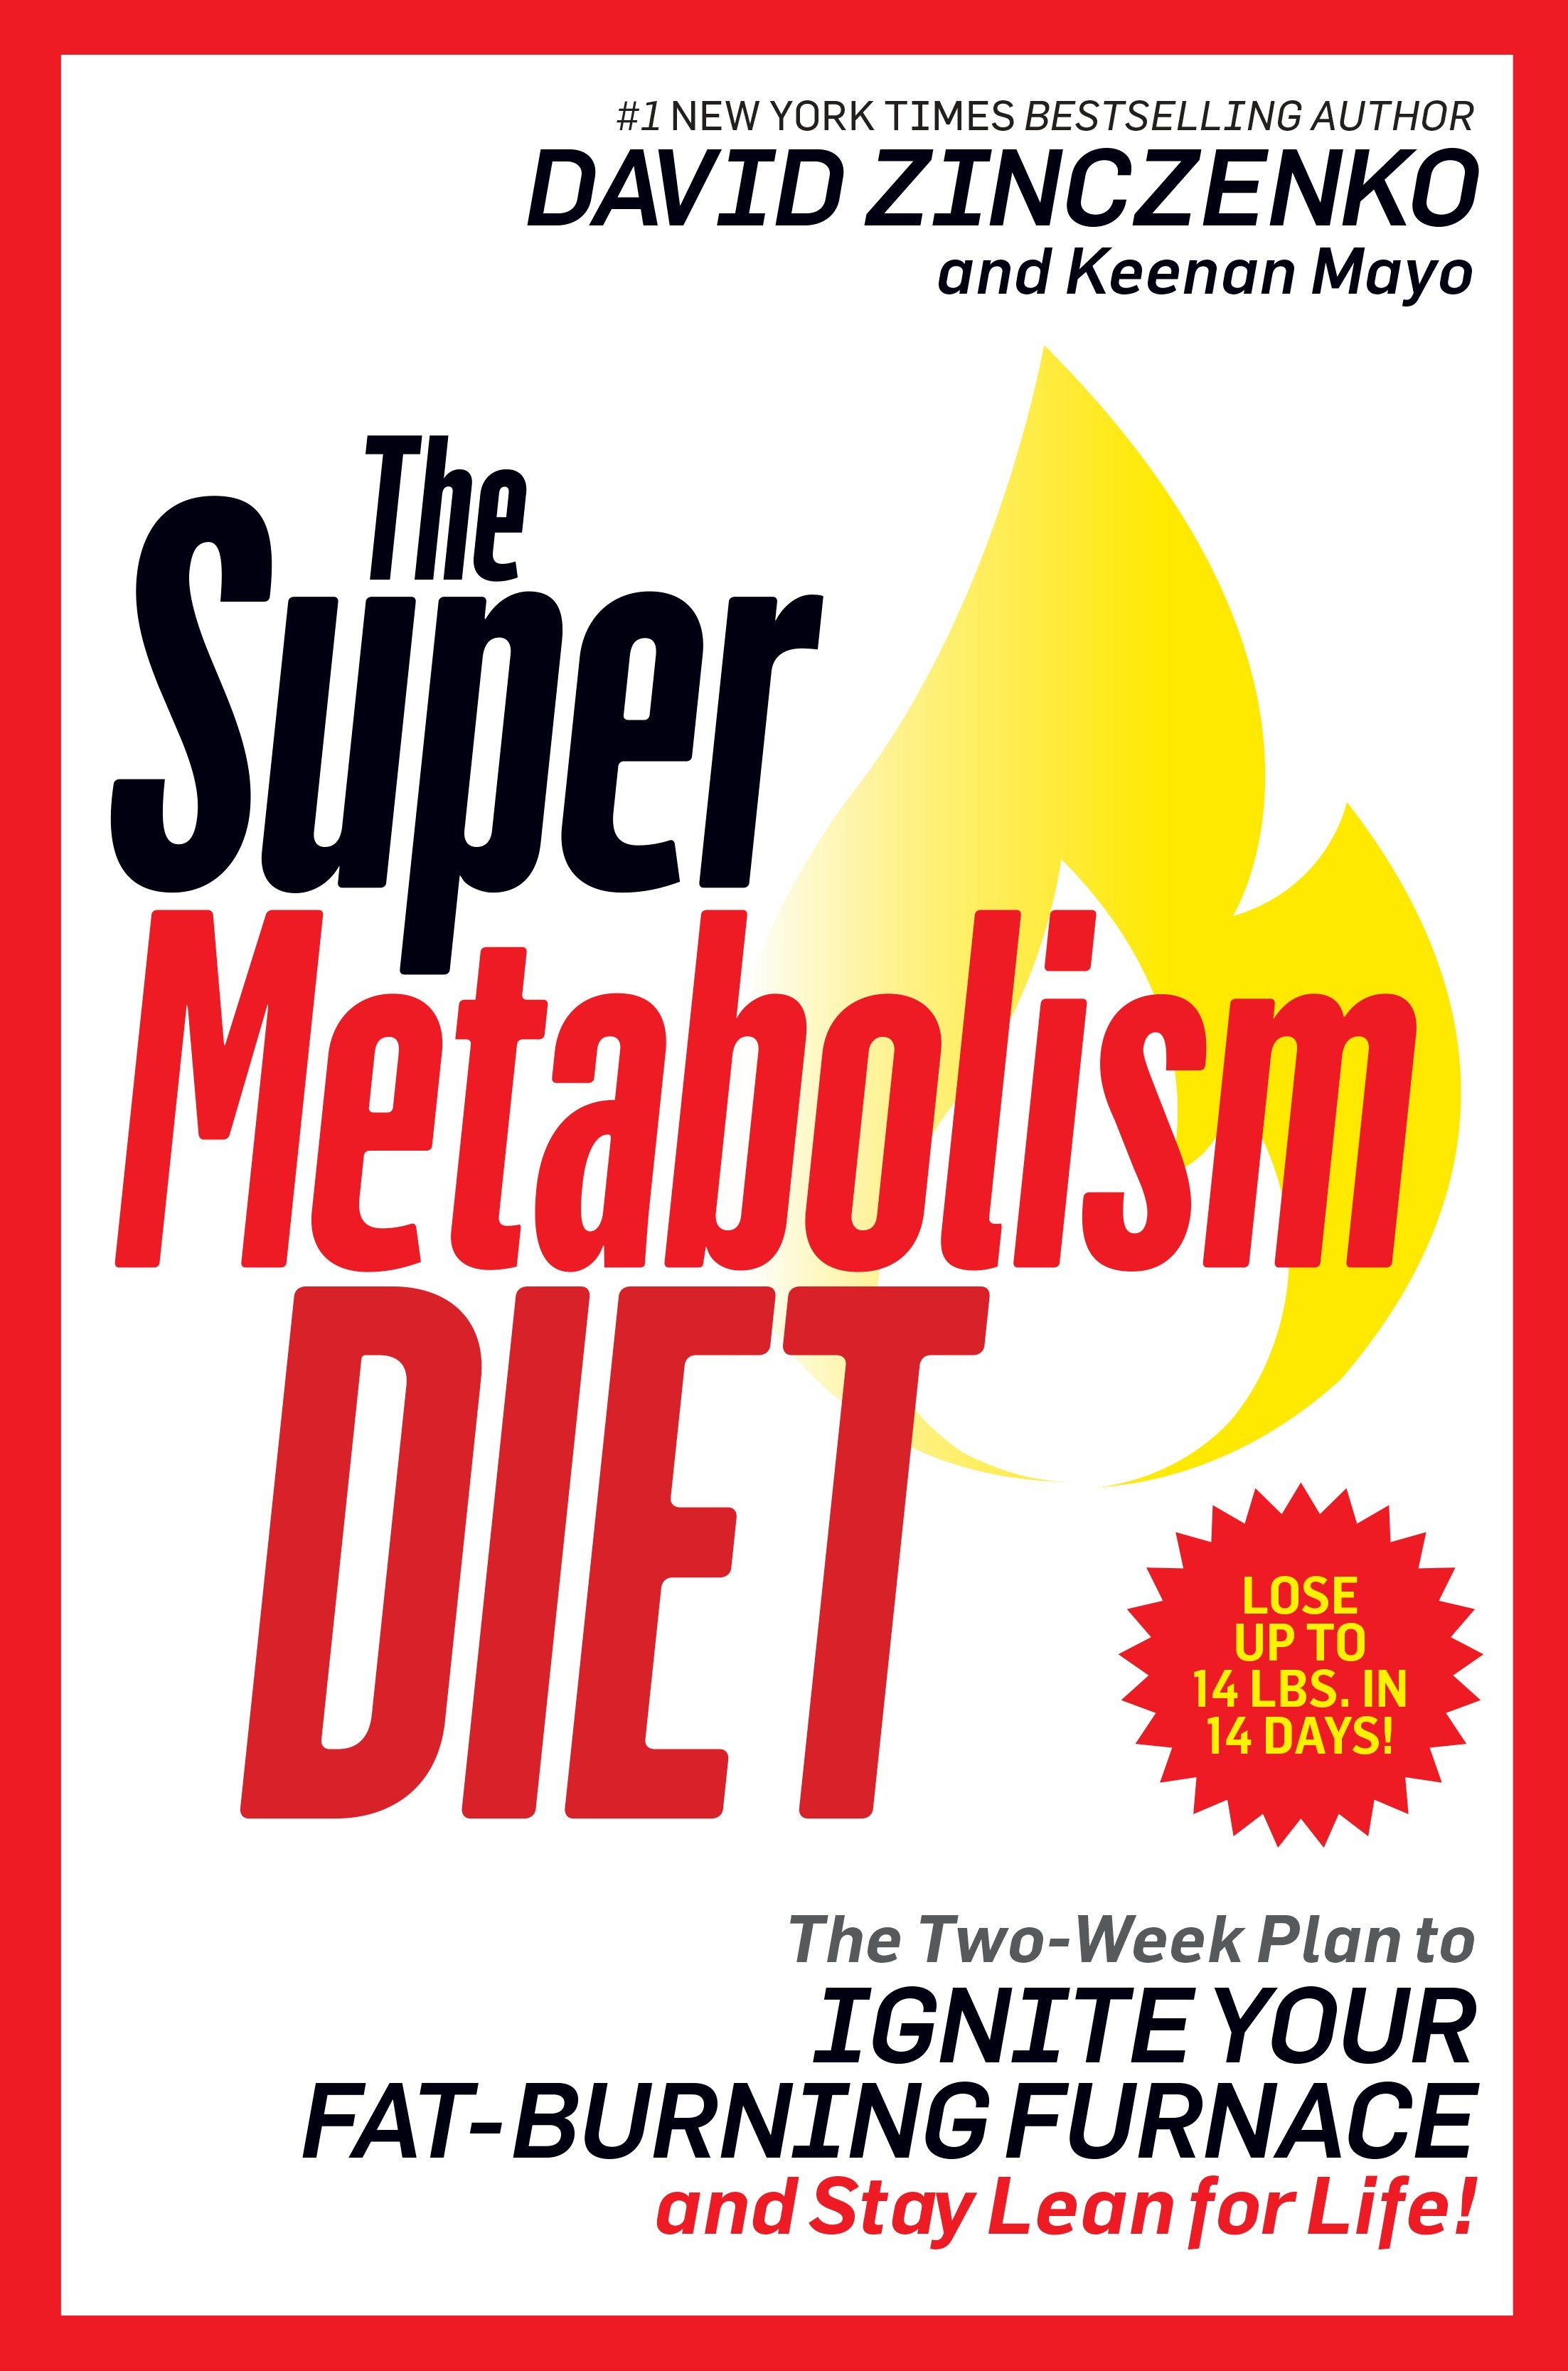 The Super Metabolism Diet The Two-Week Plan to Ignite Your Fat-Burning Furnace and Stay Lean for Life!